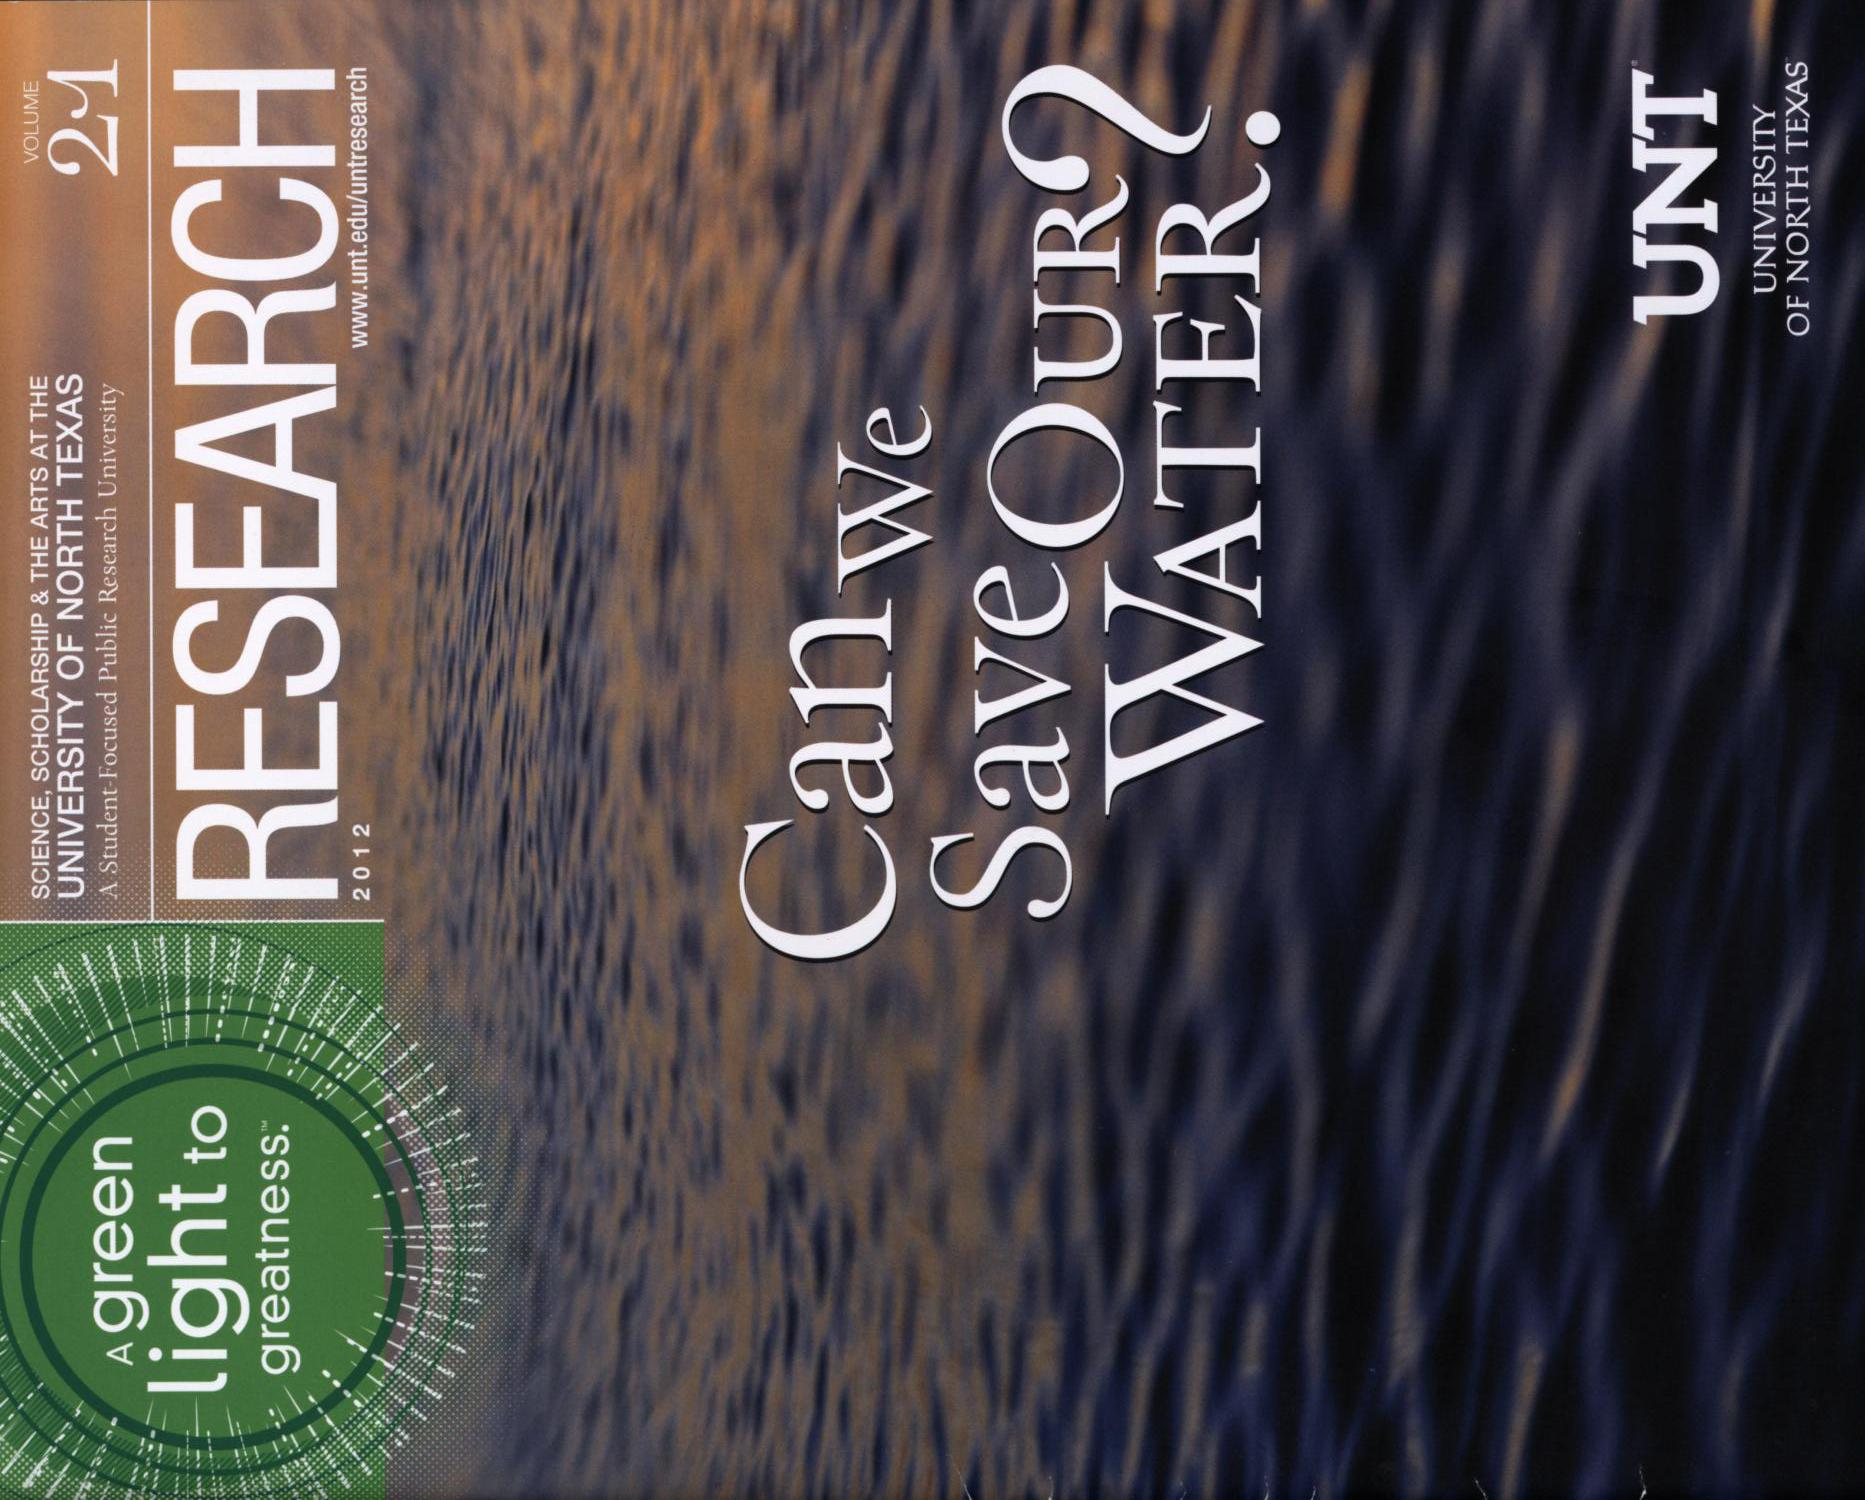 UNT Research, Volume 21, 2012                                                                                                      Front Cover